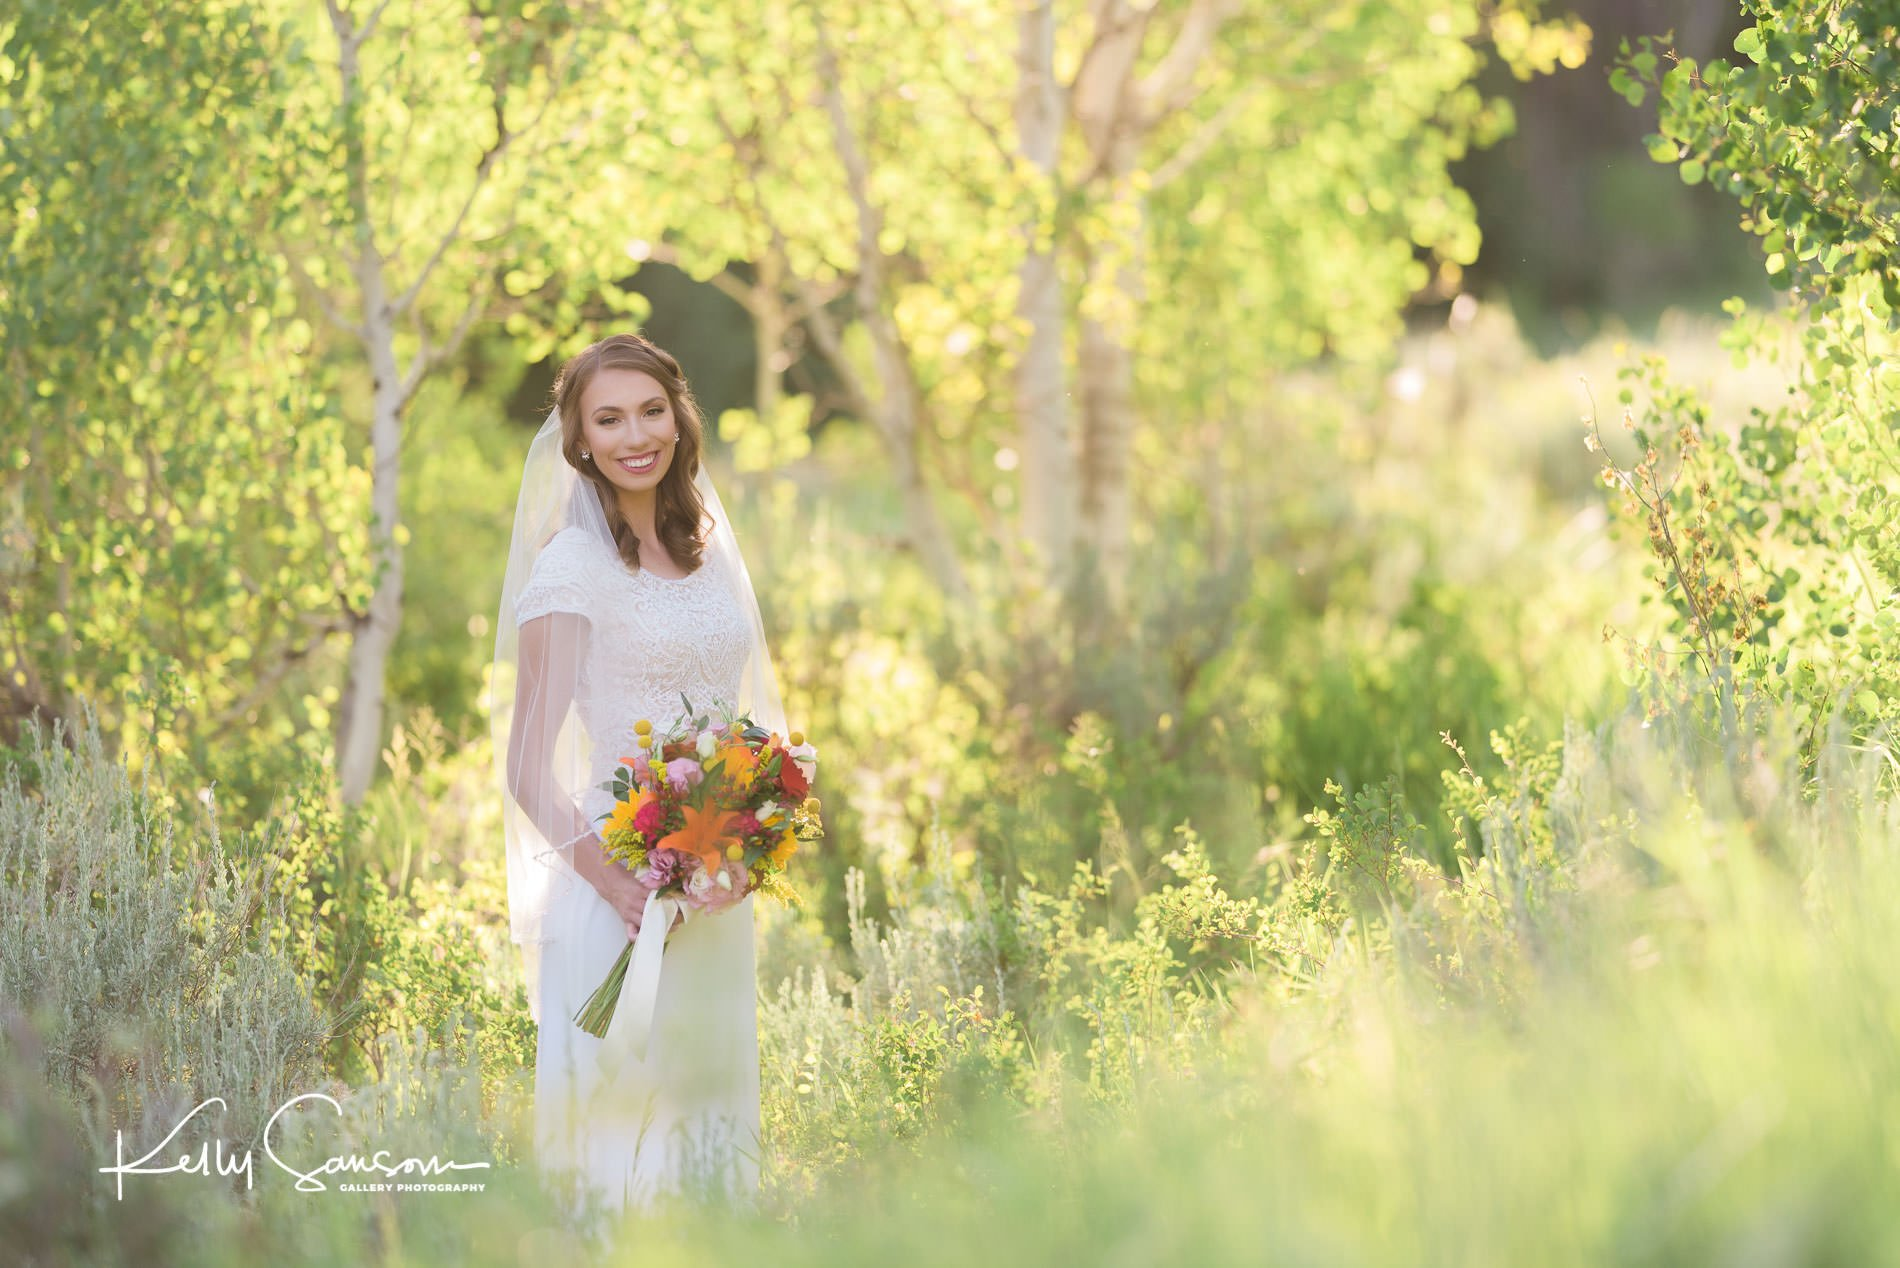 A bride holding her bouquet smiling with yellow aspen leaves behind for bridal photography at Tibble Fork.